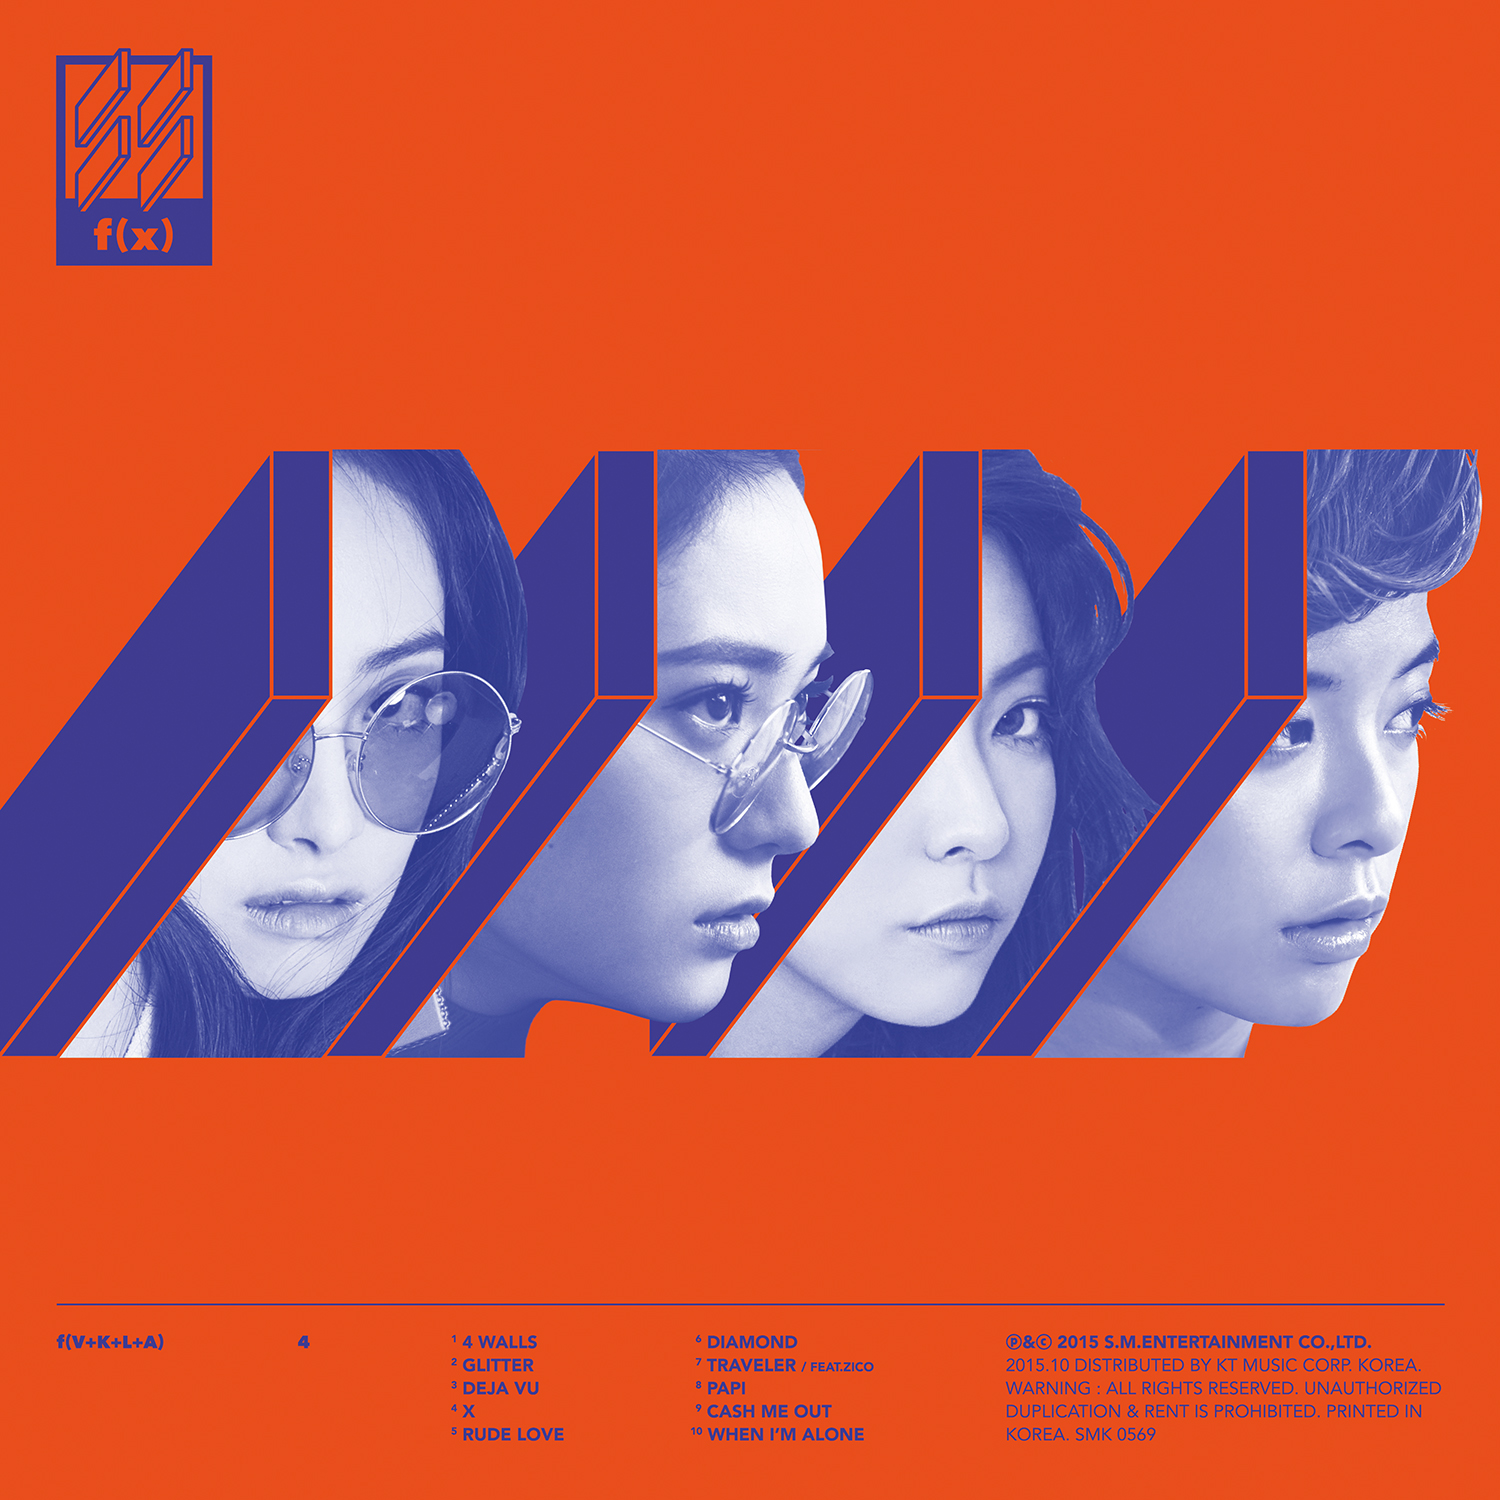 [f(x)] 4 Walls - The 4th Album